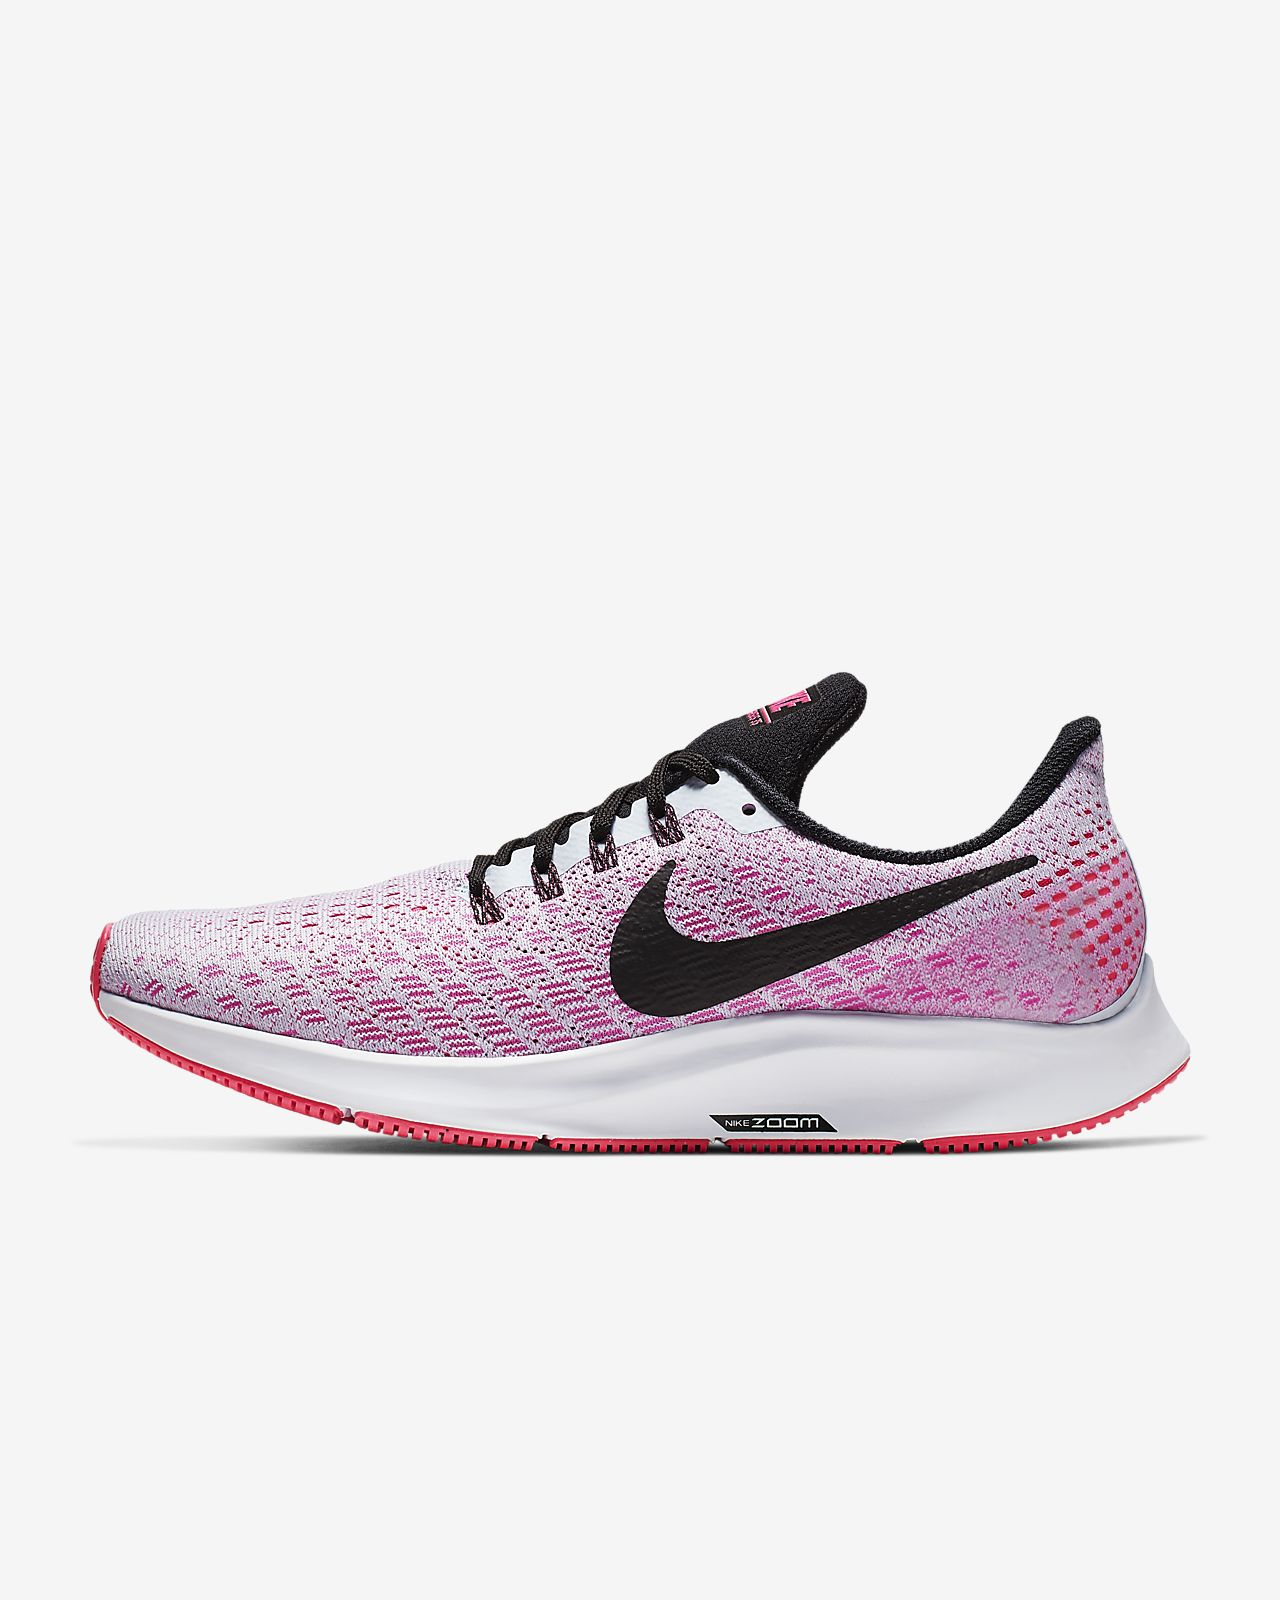 4a76e4a422ca Nike Air Zoom Pegasus 35 Women s Running Shoe. Nike.com